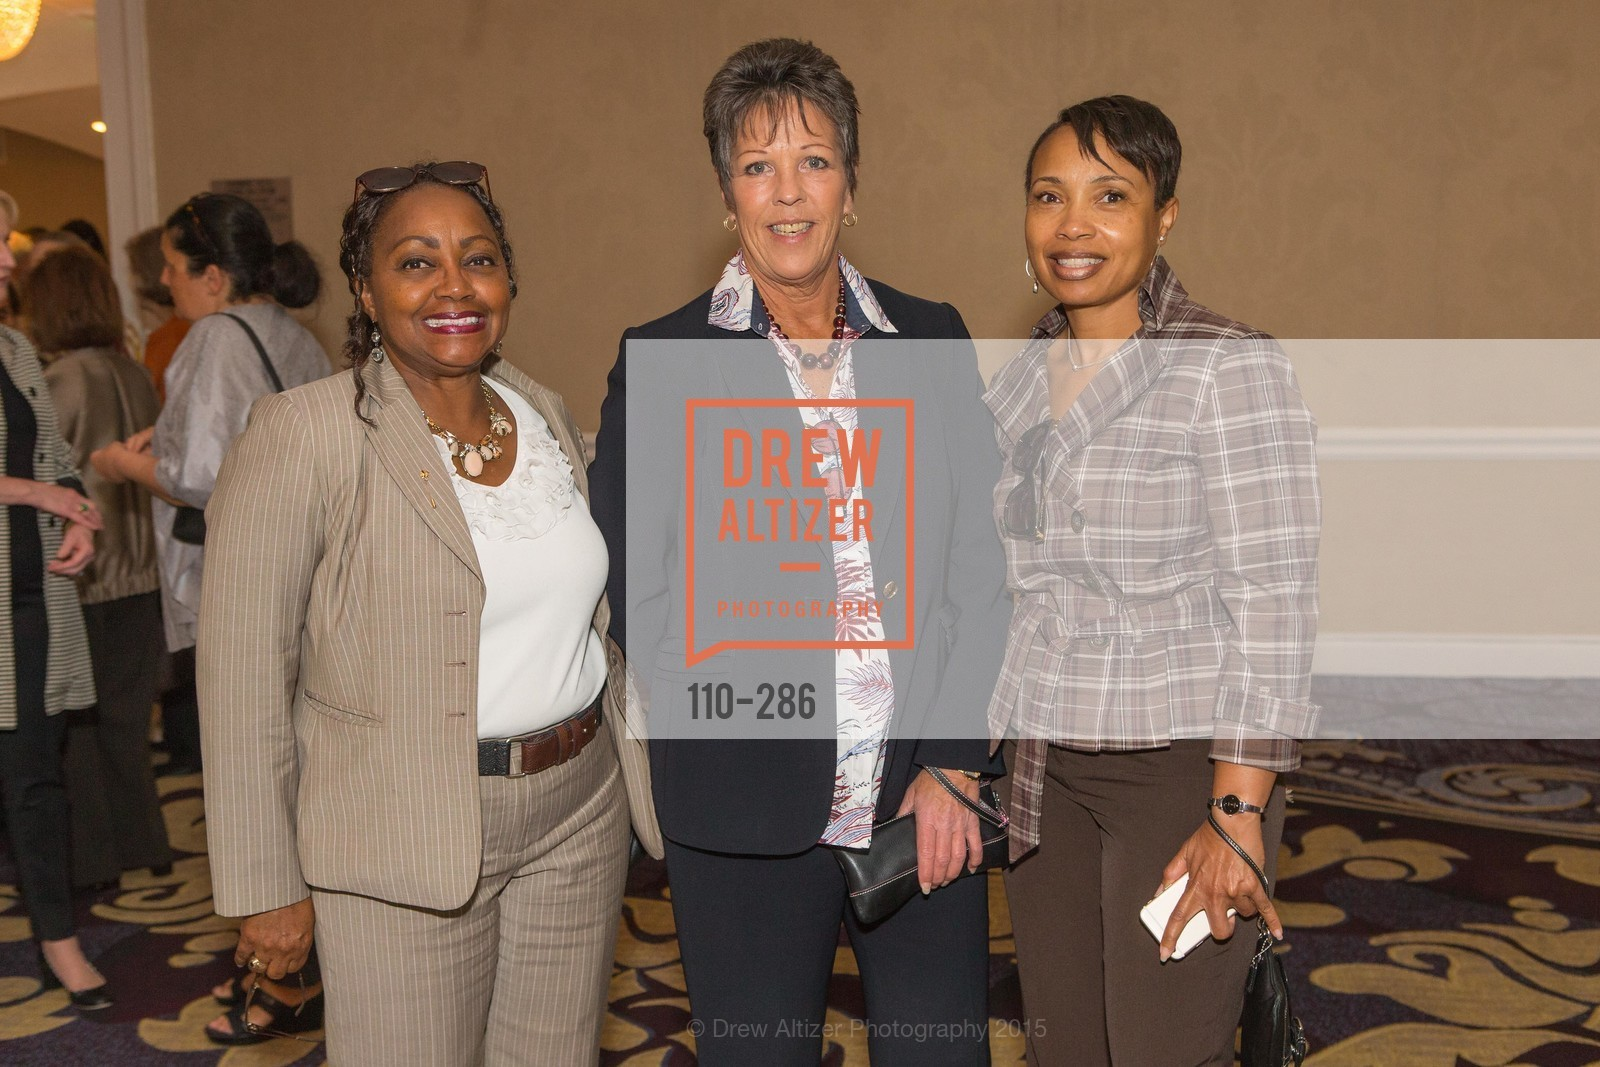 Phyllis London, Diane Hubgle, Judy Leffall, CCSF Basic Skills Luncheon, Fairmont Hotel, Grand Ballroom, September 15th, 2015,Drew Altizer, Drew Altizer Photography, full-service agency, private events, San Francisco photographer, photographer california